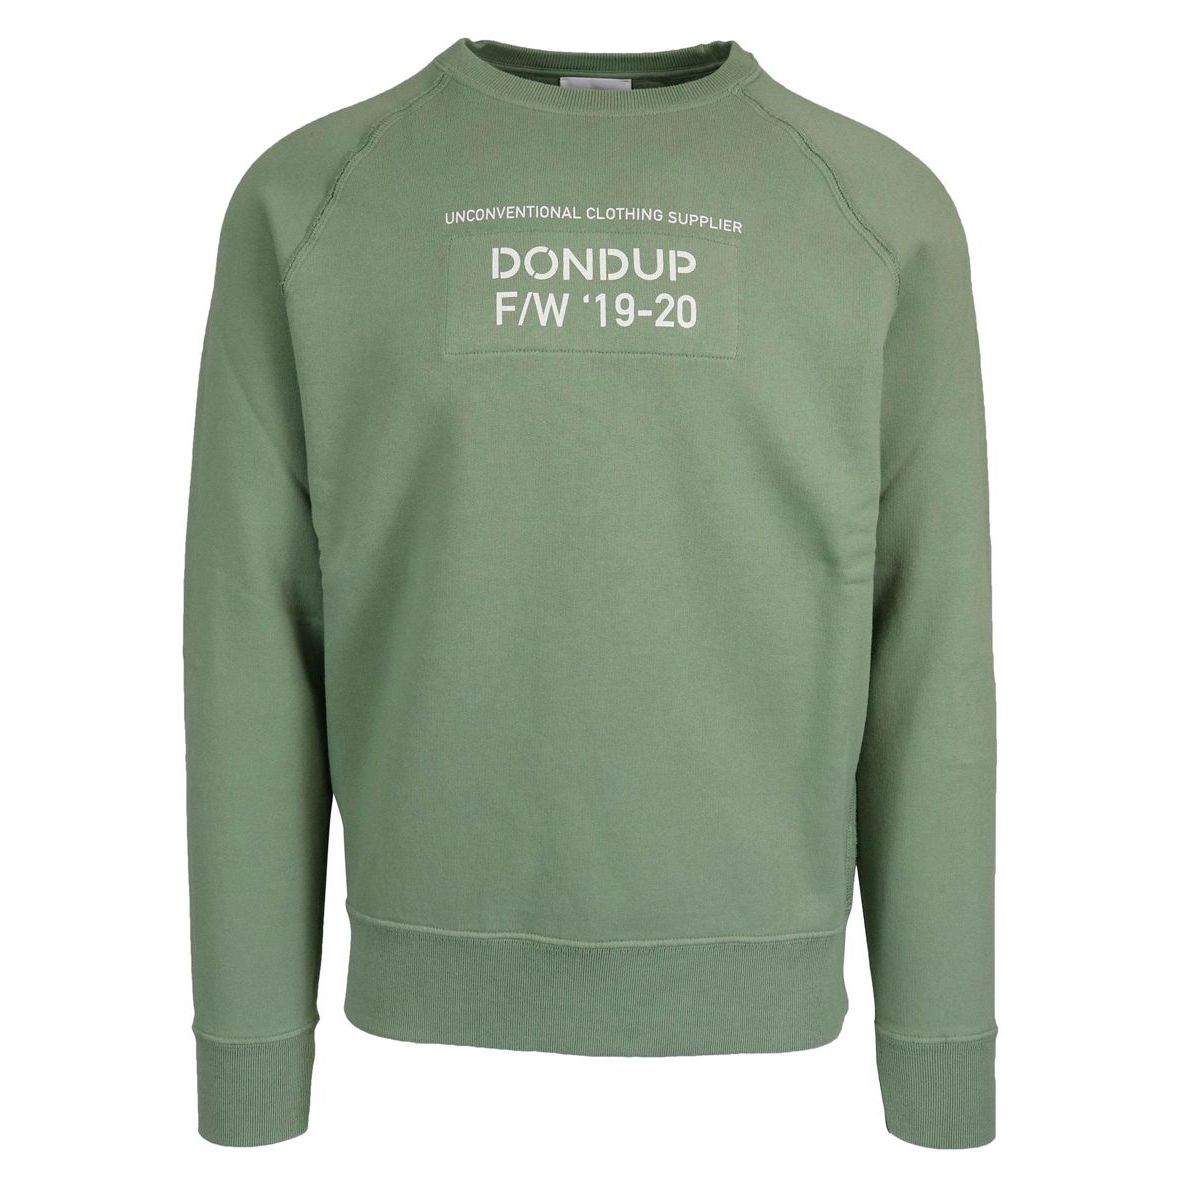 Crewneck sweatshirt with elasticated cuffs and waist Green Dondup